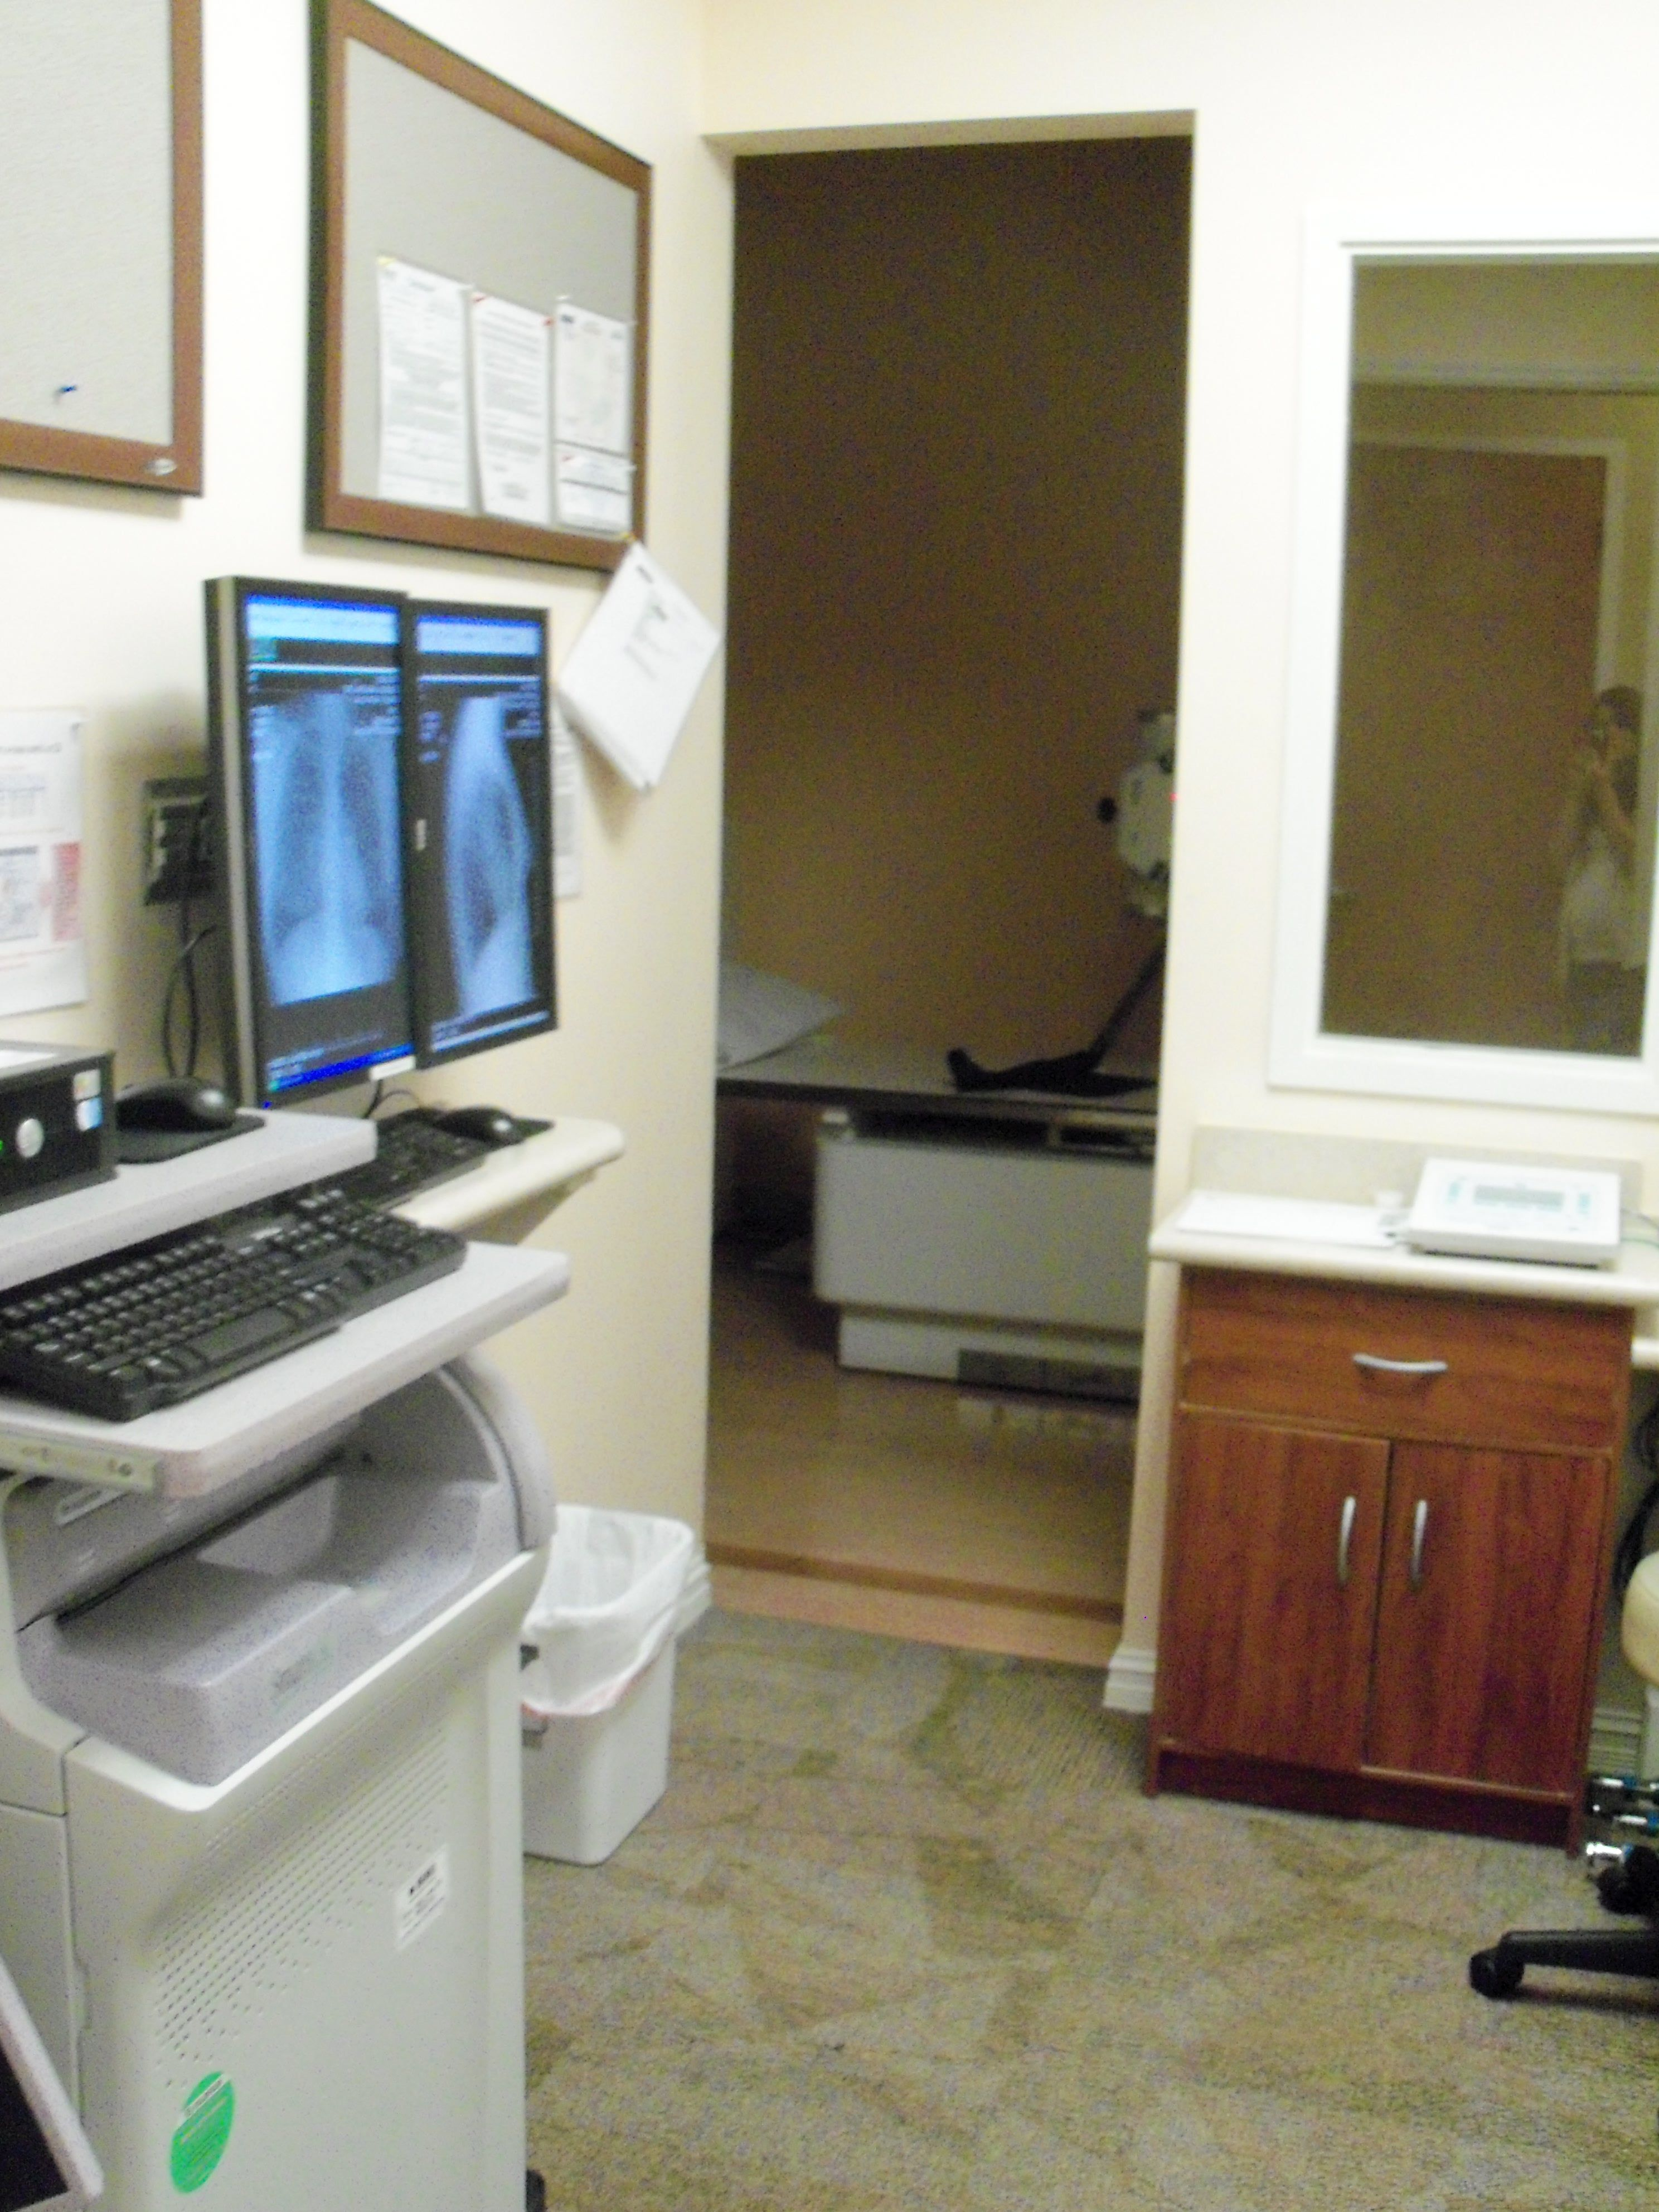 This is the Xray Room in our Lake Worth location. We are